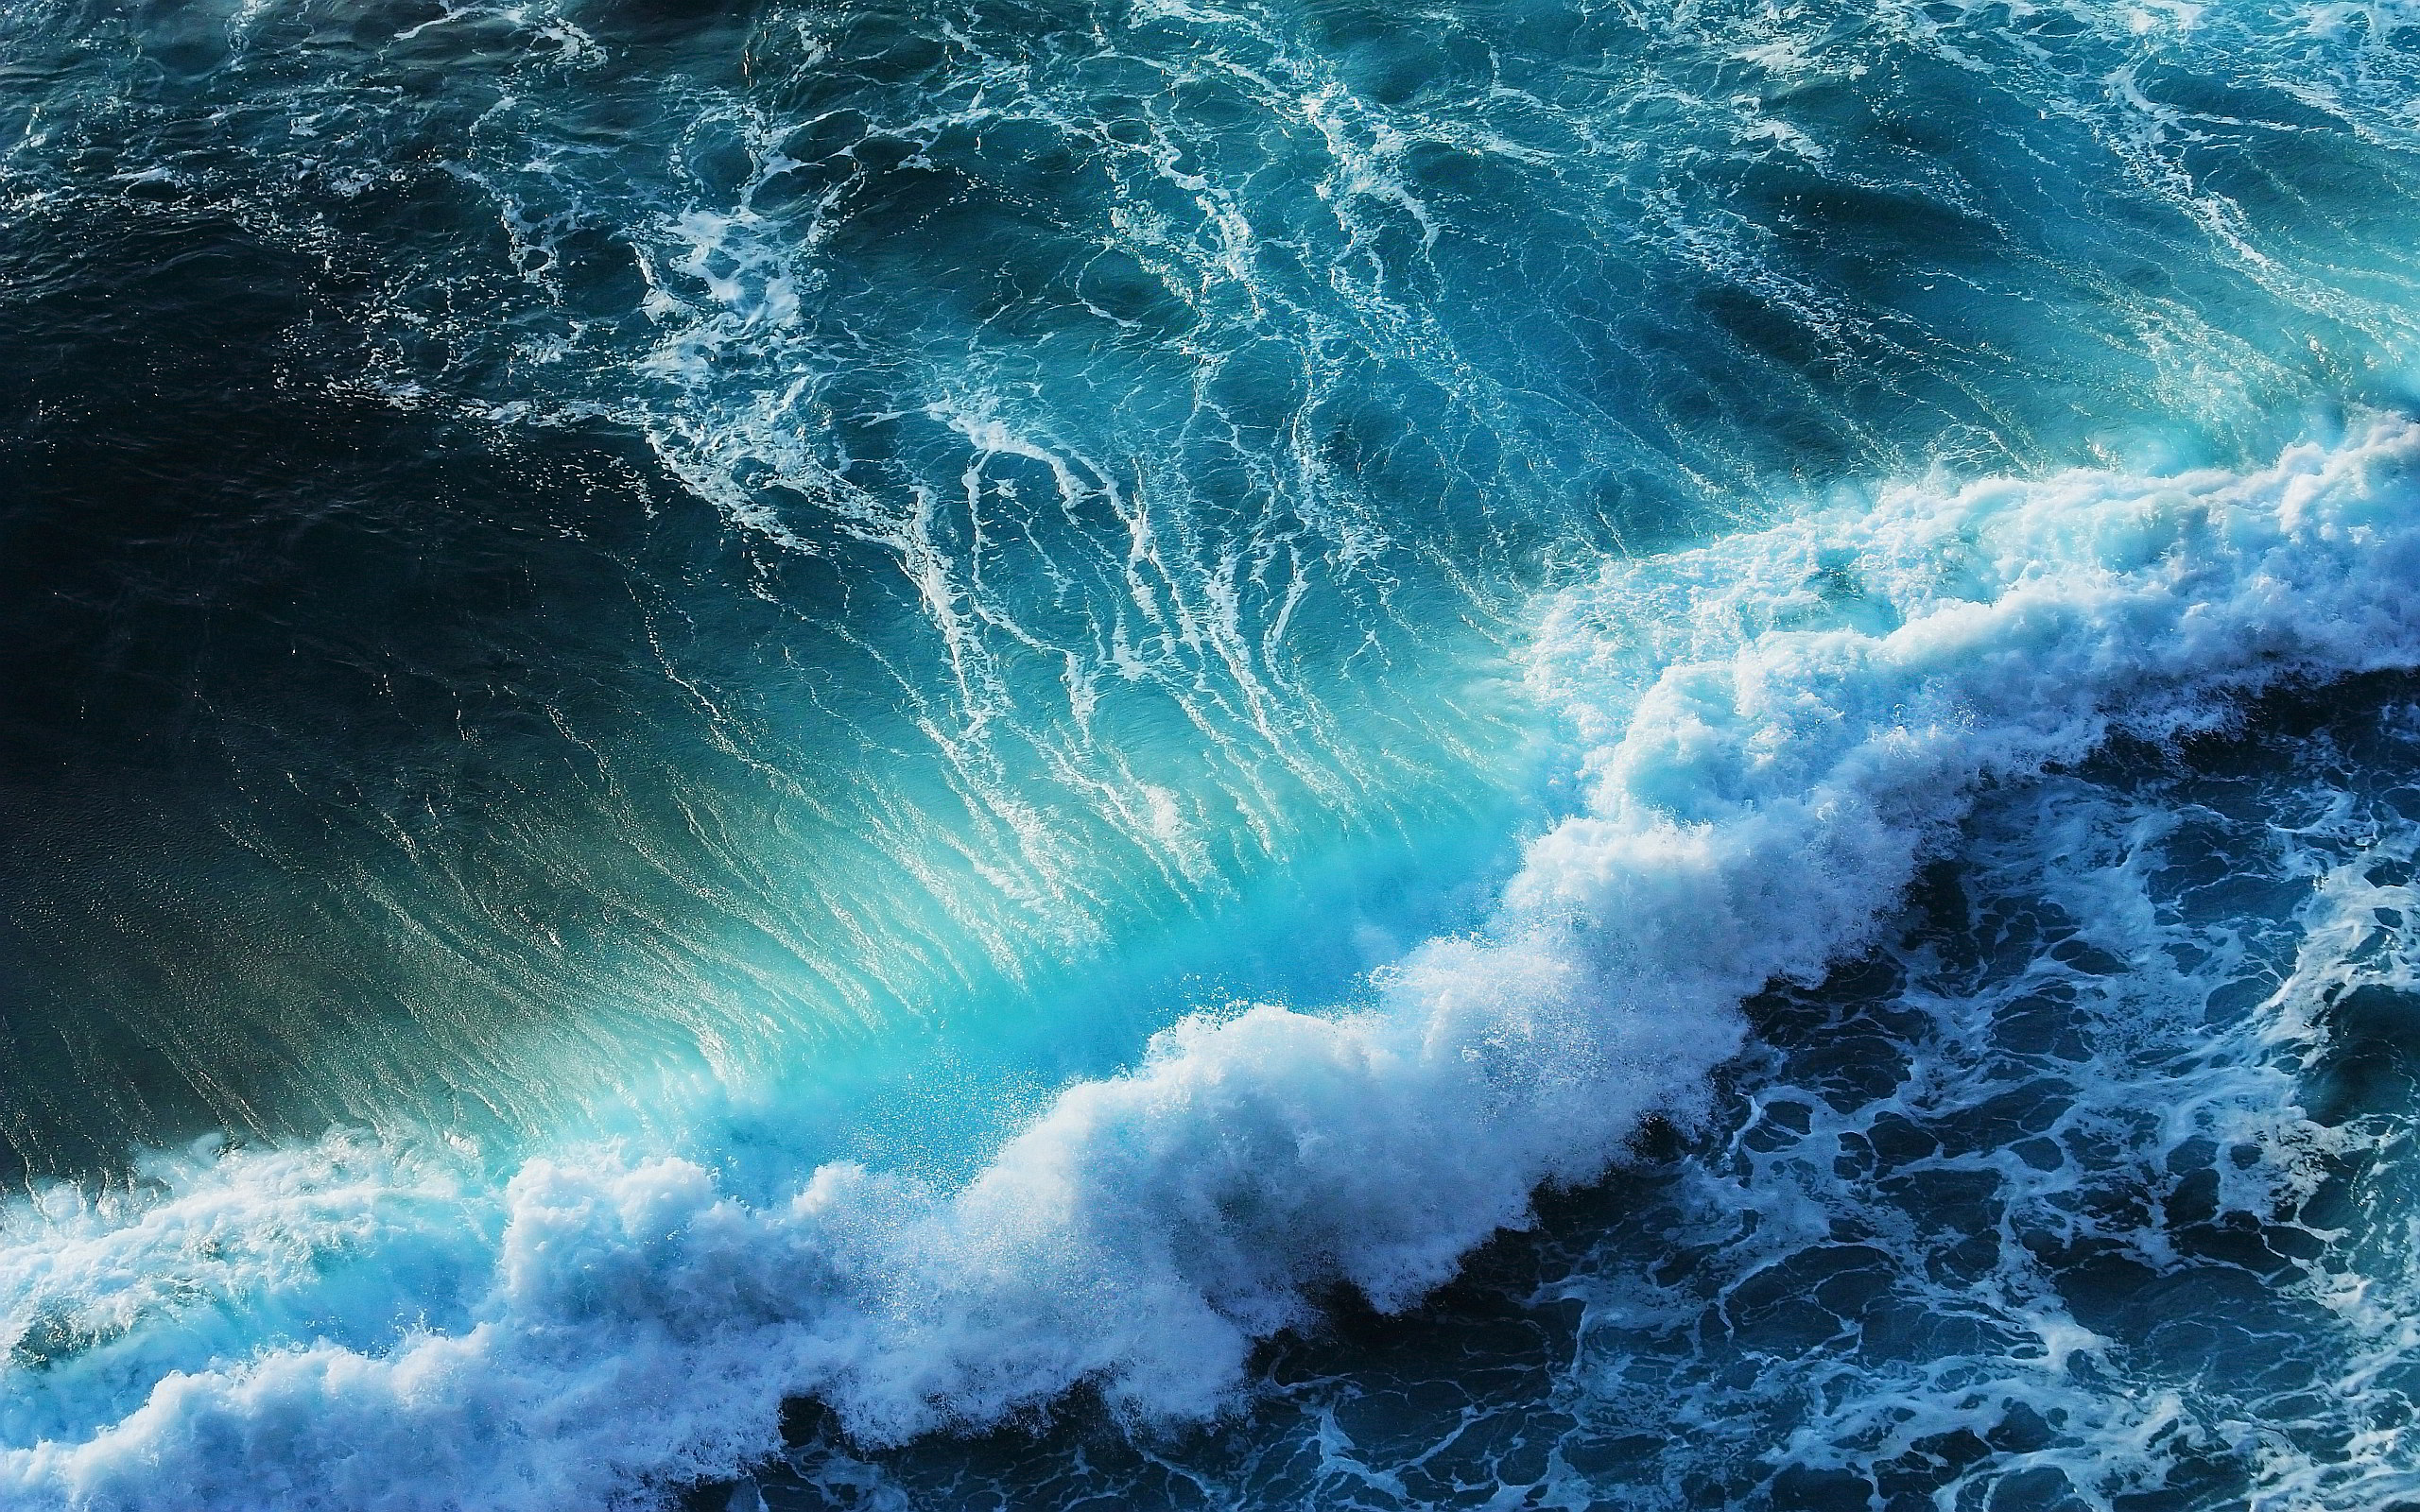 Sea Waves 31030 1600x1000 px